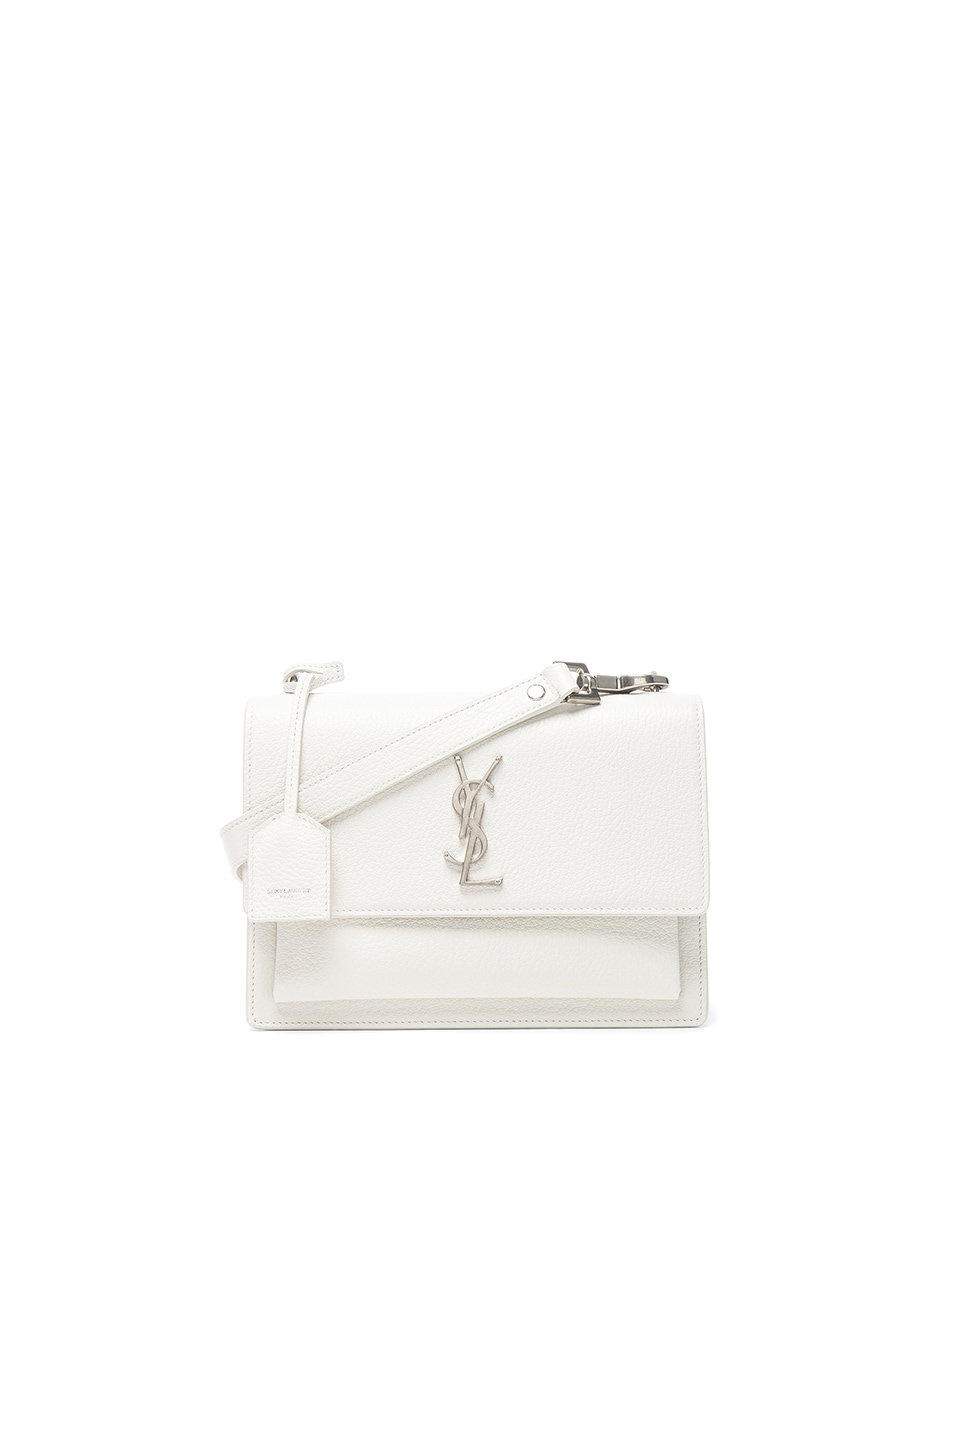 Image 1 of Saint Laurent Medium Monogramme Sunset Satchel in White Chalk